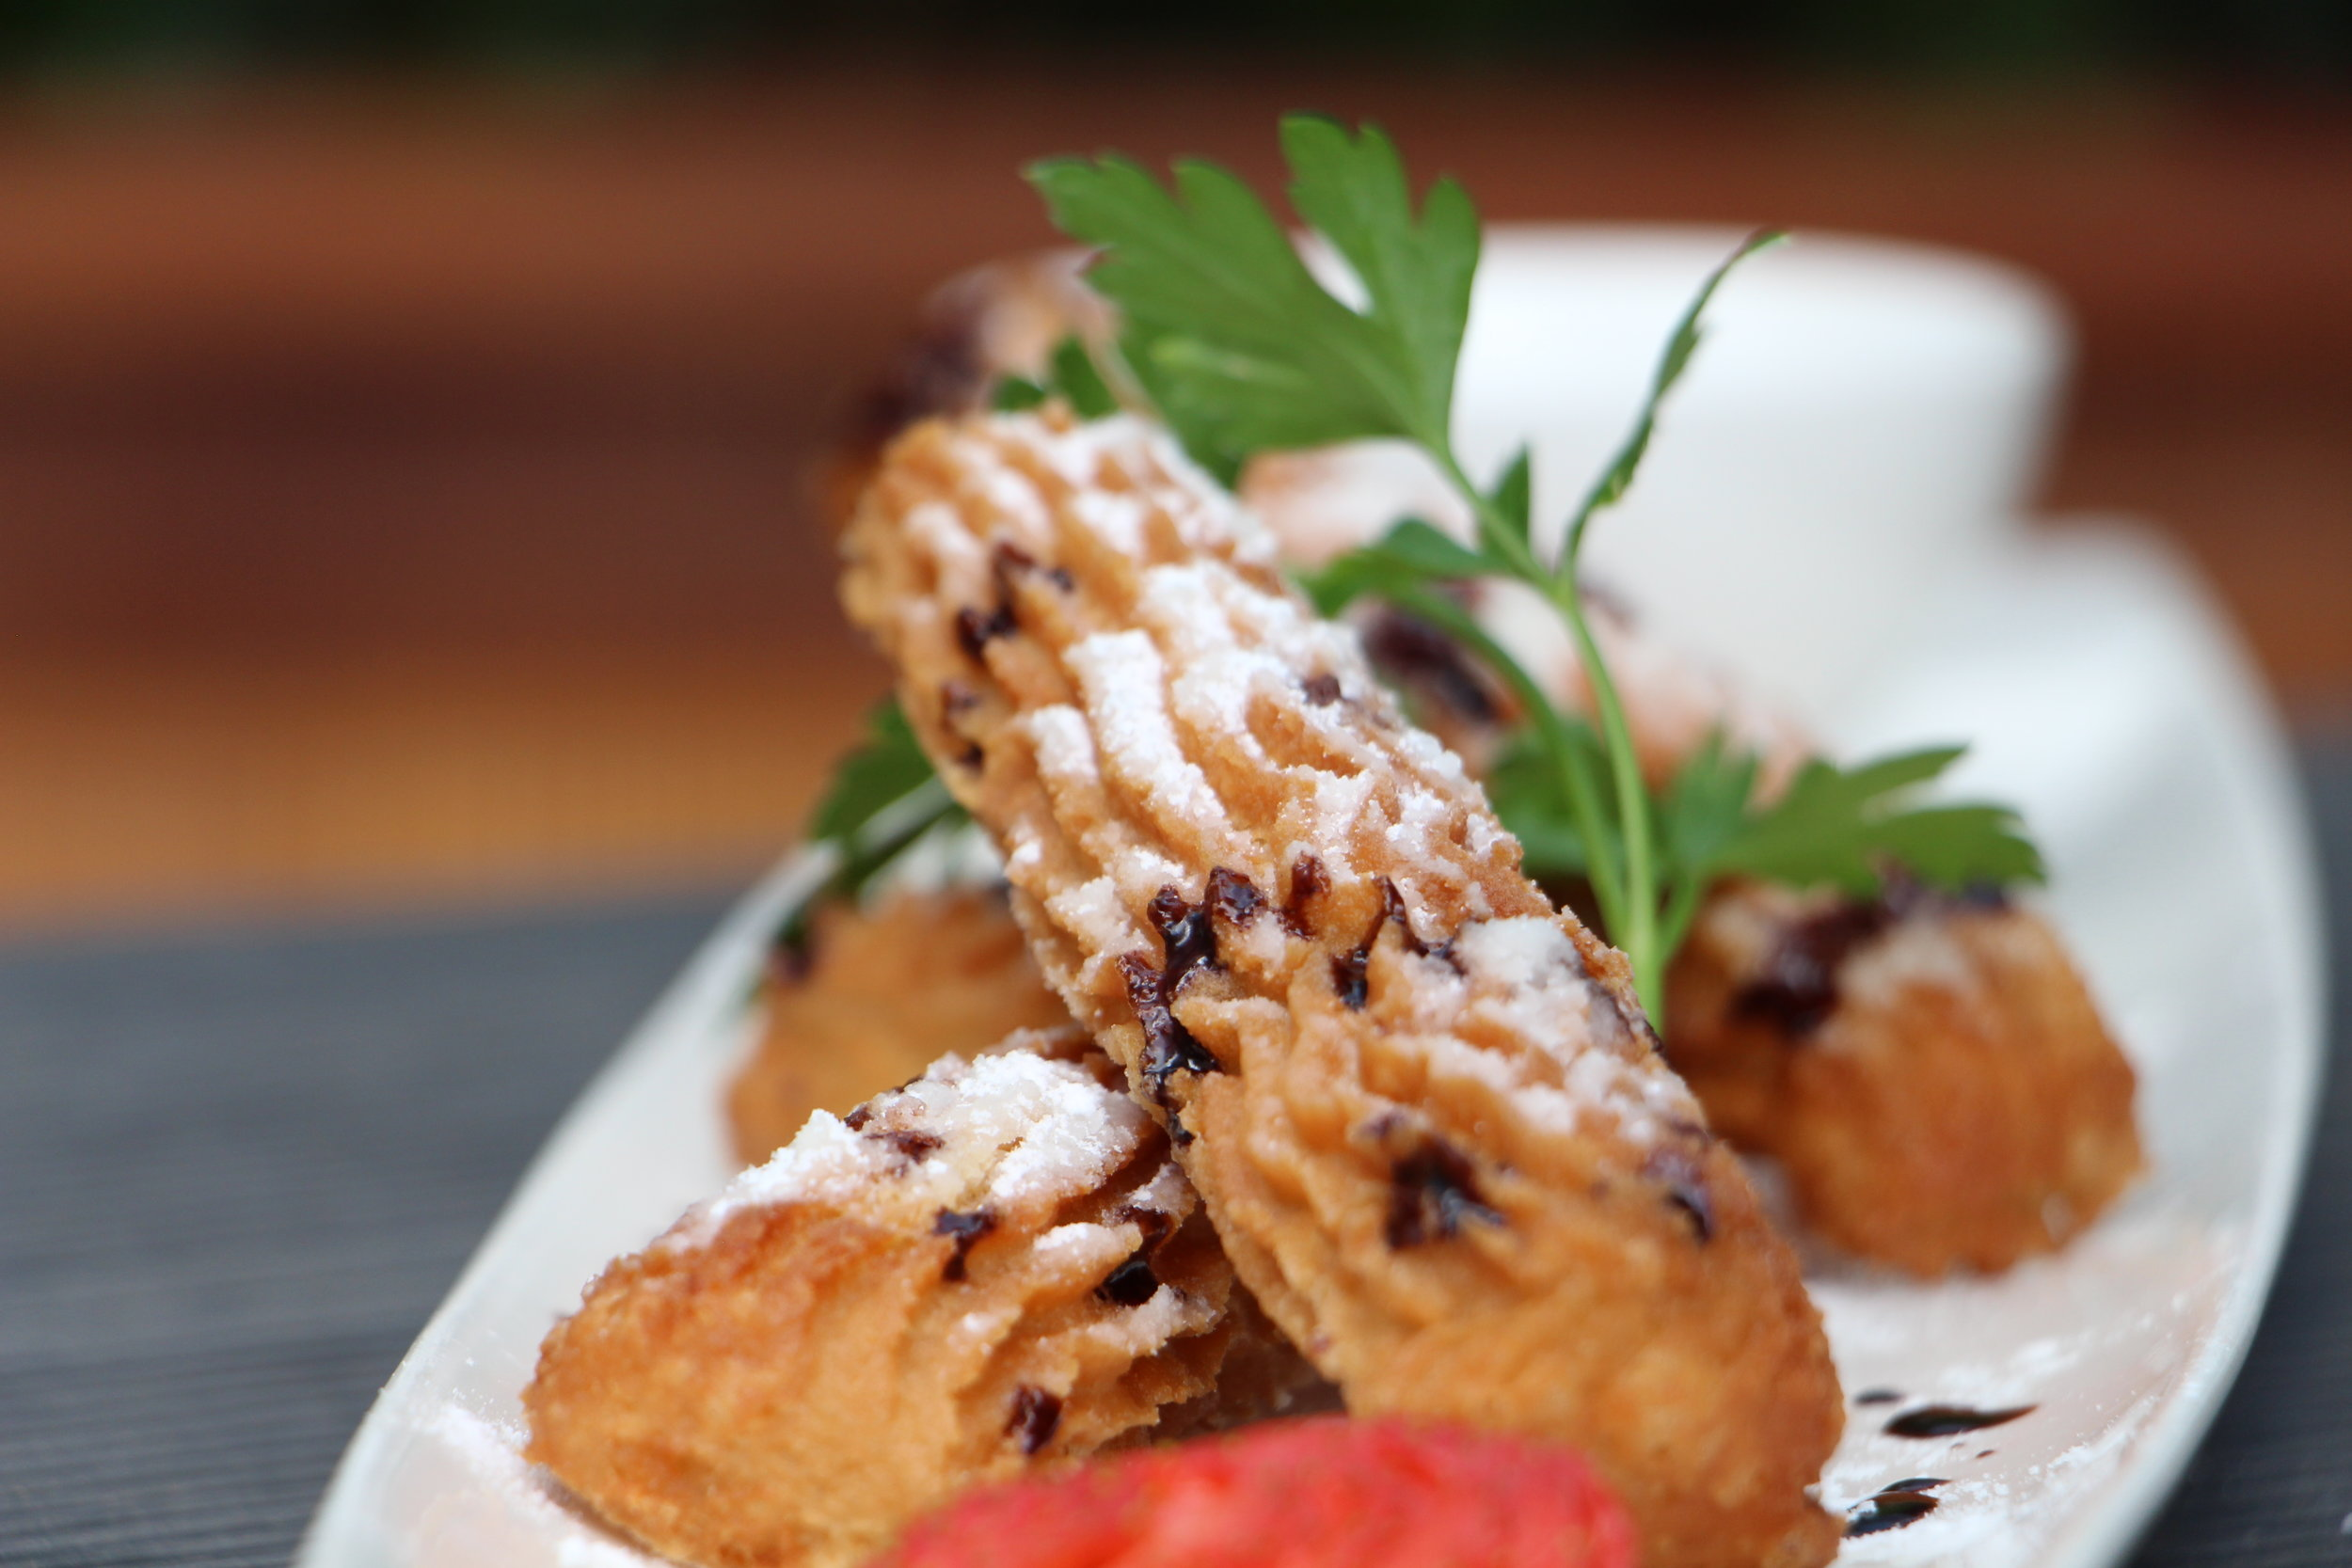 Spanish finger donuts of deep-fried choux pastry coated in a cinnamon-sugar mixture will leave you licking your fingers wanting more, especially with our moreish chocolate dipping sauce.